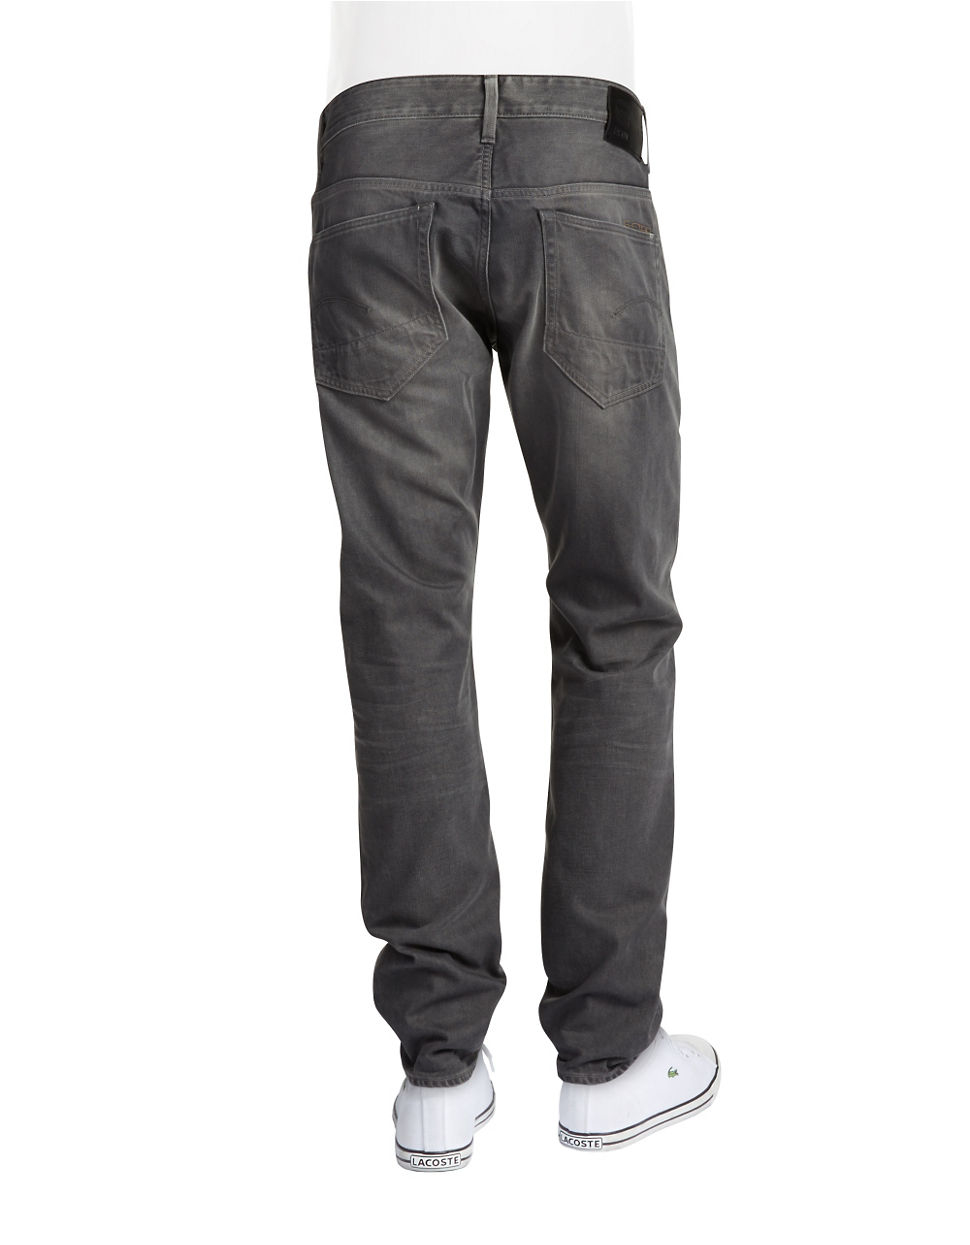 g star raw tapered jeans in gray for men lyst. Black Bedroom Furniture Sets. Home Design Ideas